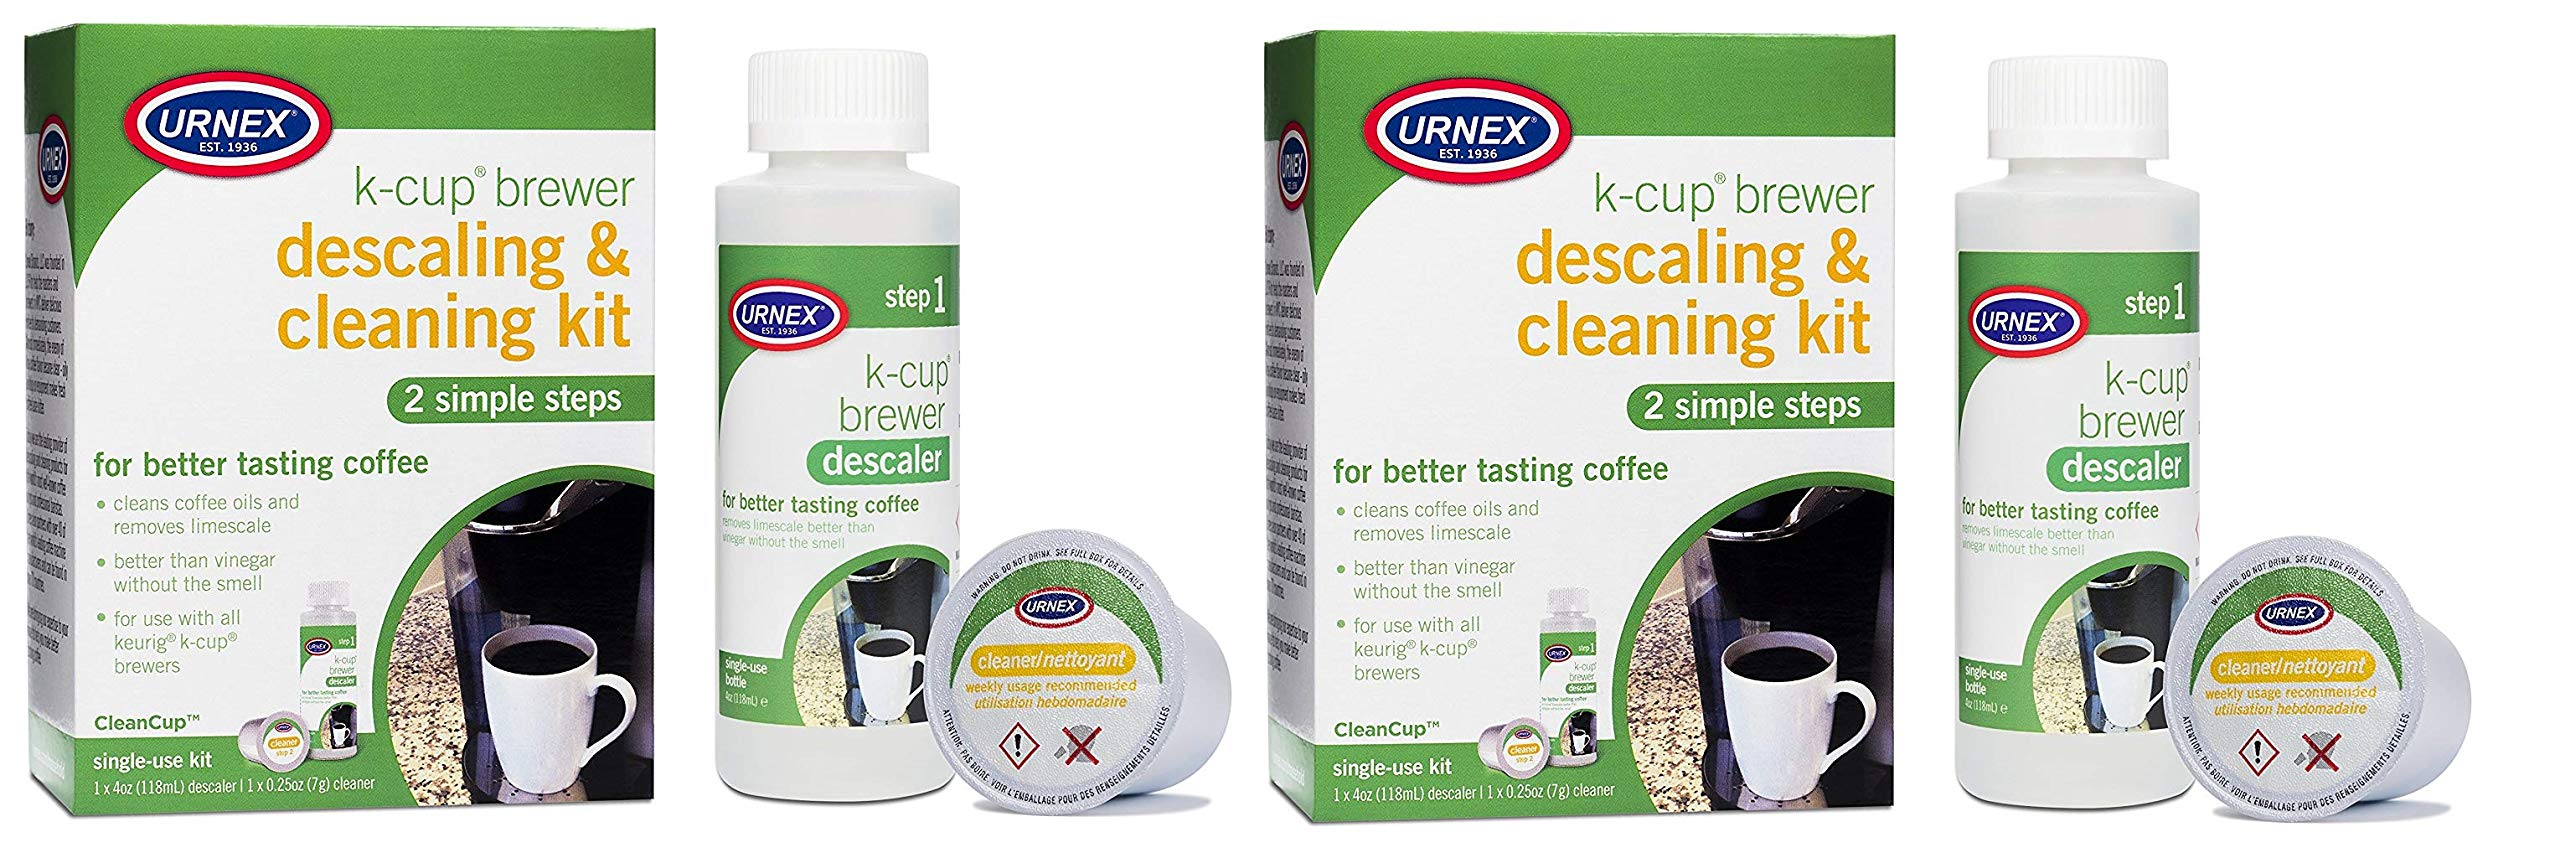 Urnex K-Cup Machine Descaler and Cleaner Kit - 2 Pack - Professional Coffee Machine Cleaner and Descaler Use With Keurig by Urnex (Image #1)